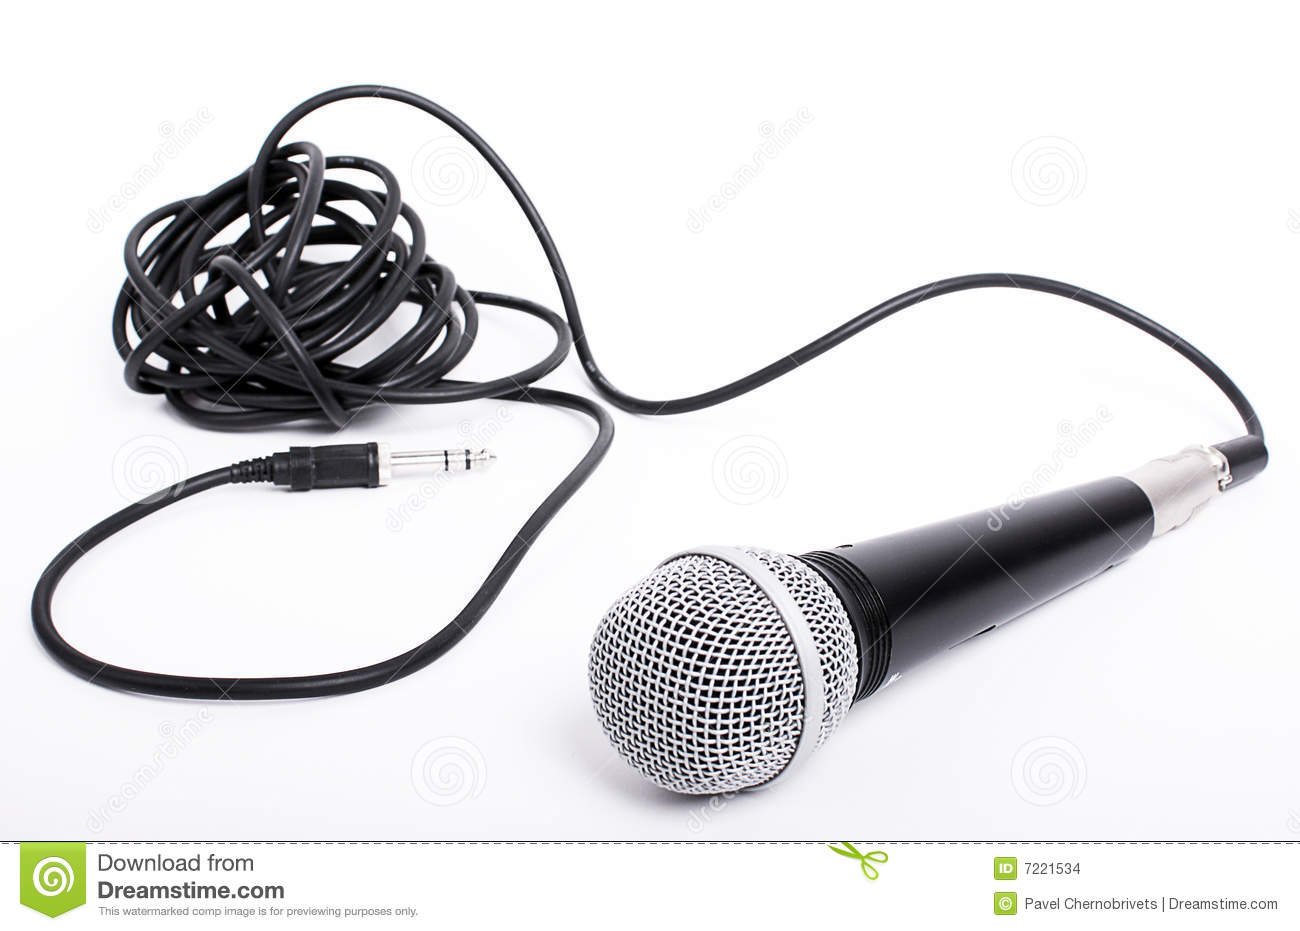 Microphone With Cord : Microphone with cord for lead singer stock images image